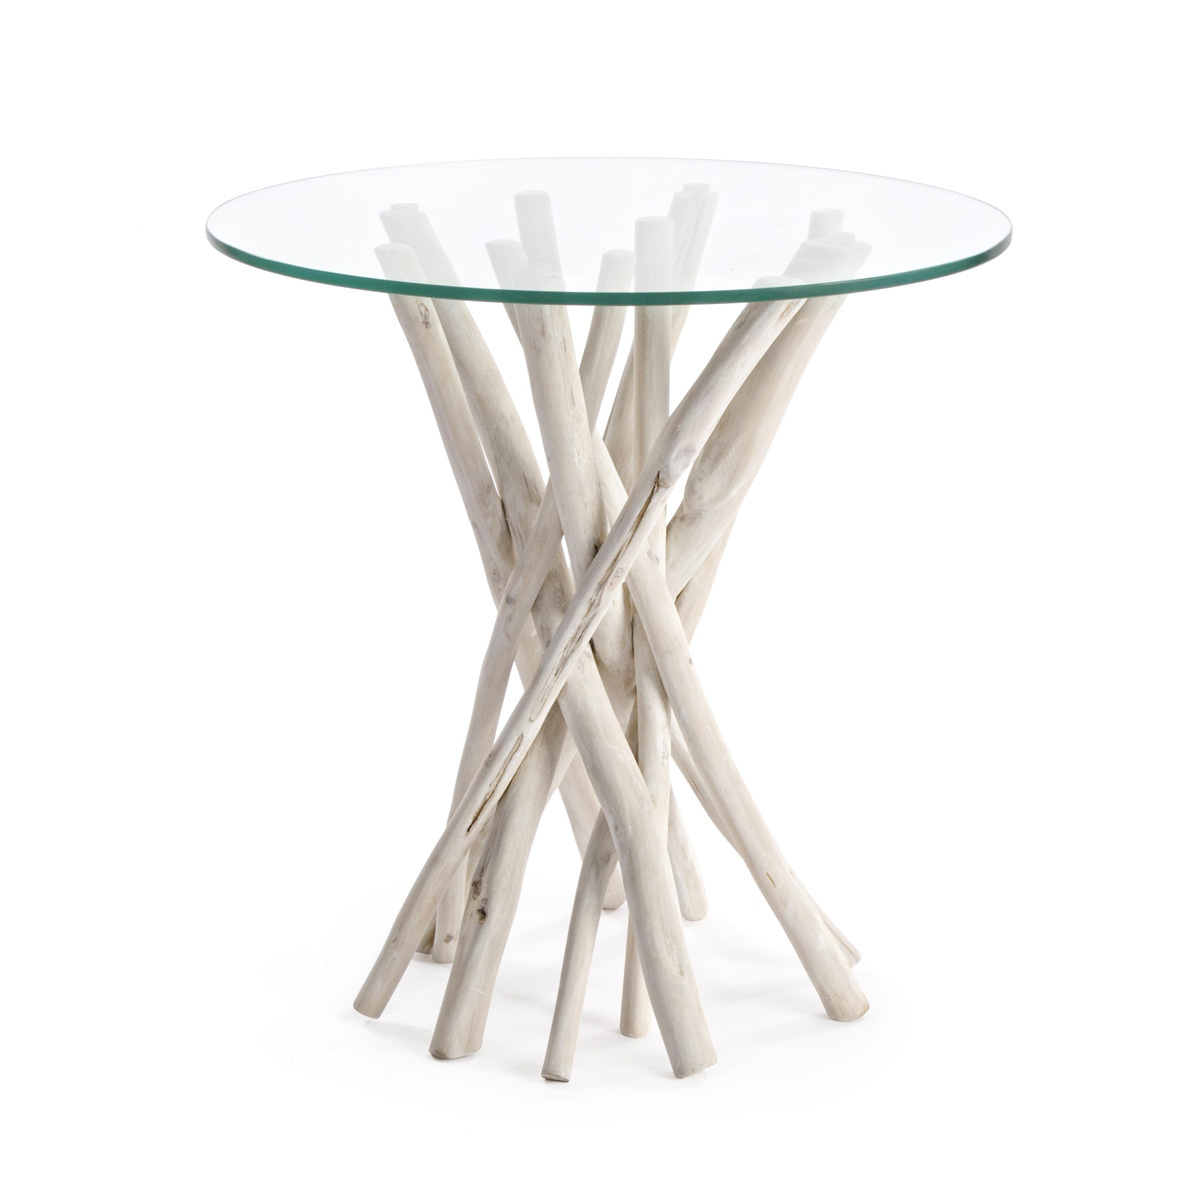 Photos 1: Bizzotto Wood and glass coffee table d. 40 0680403